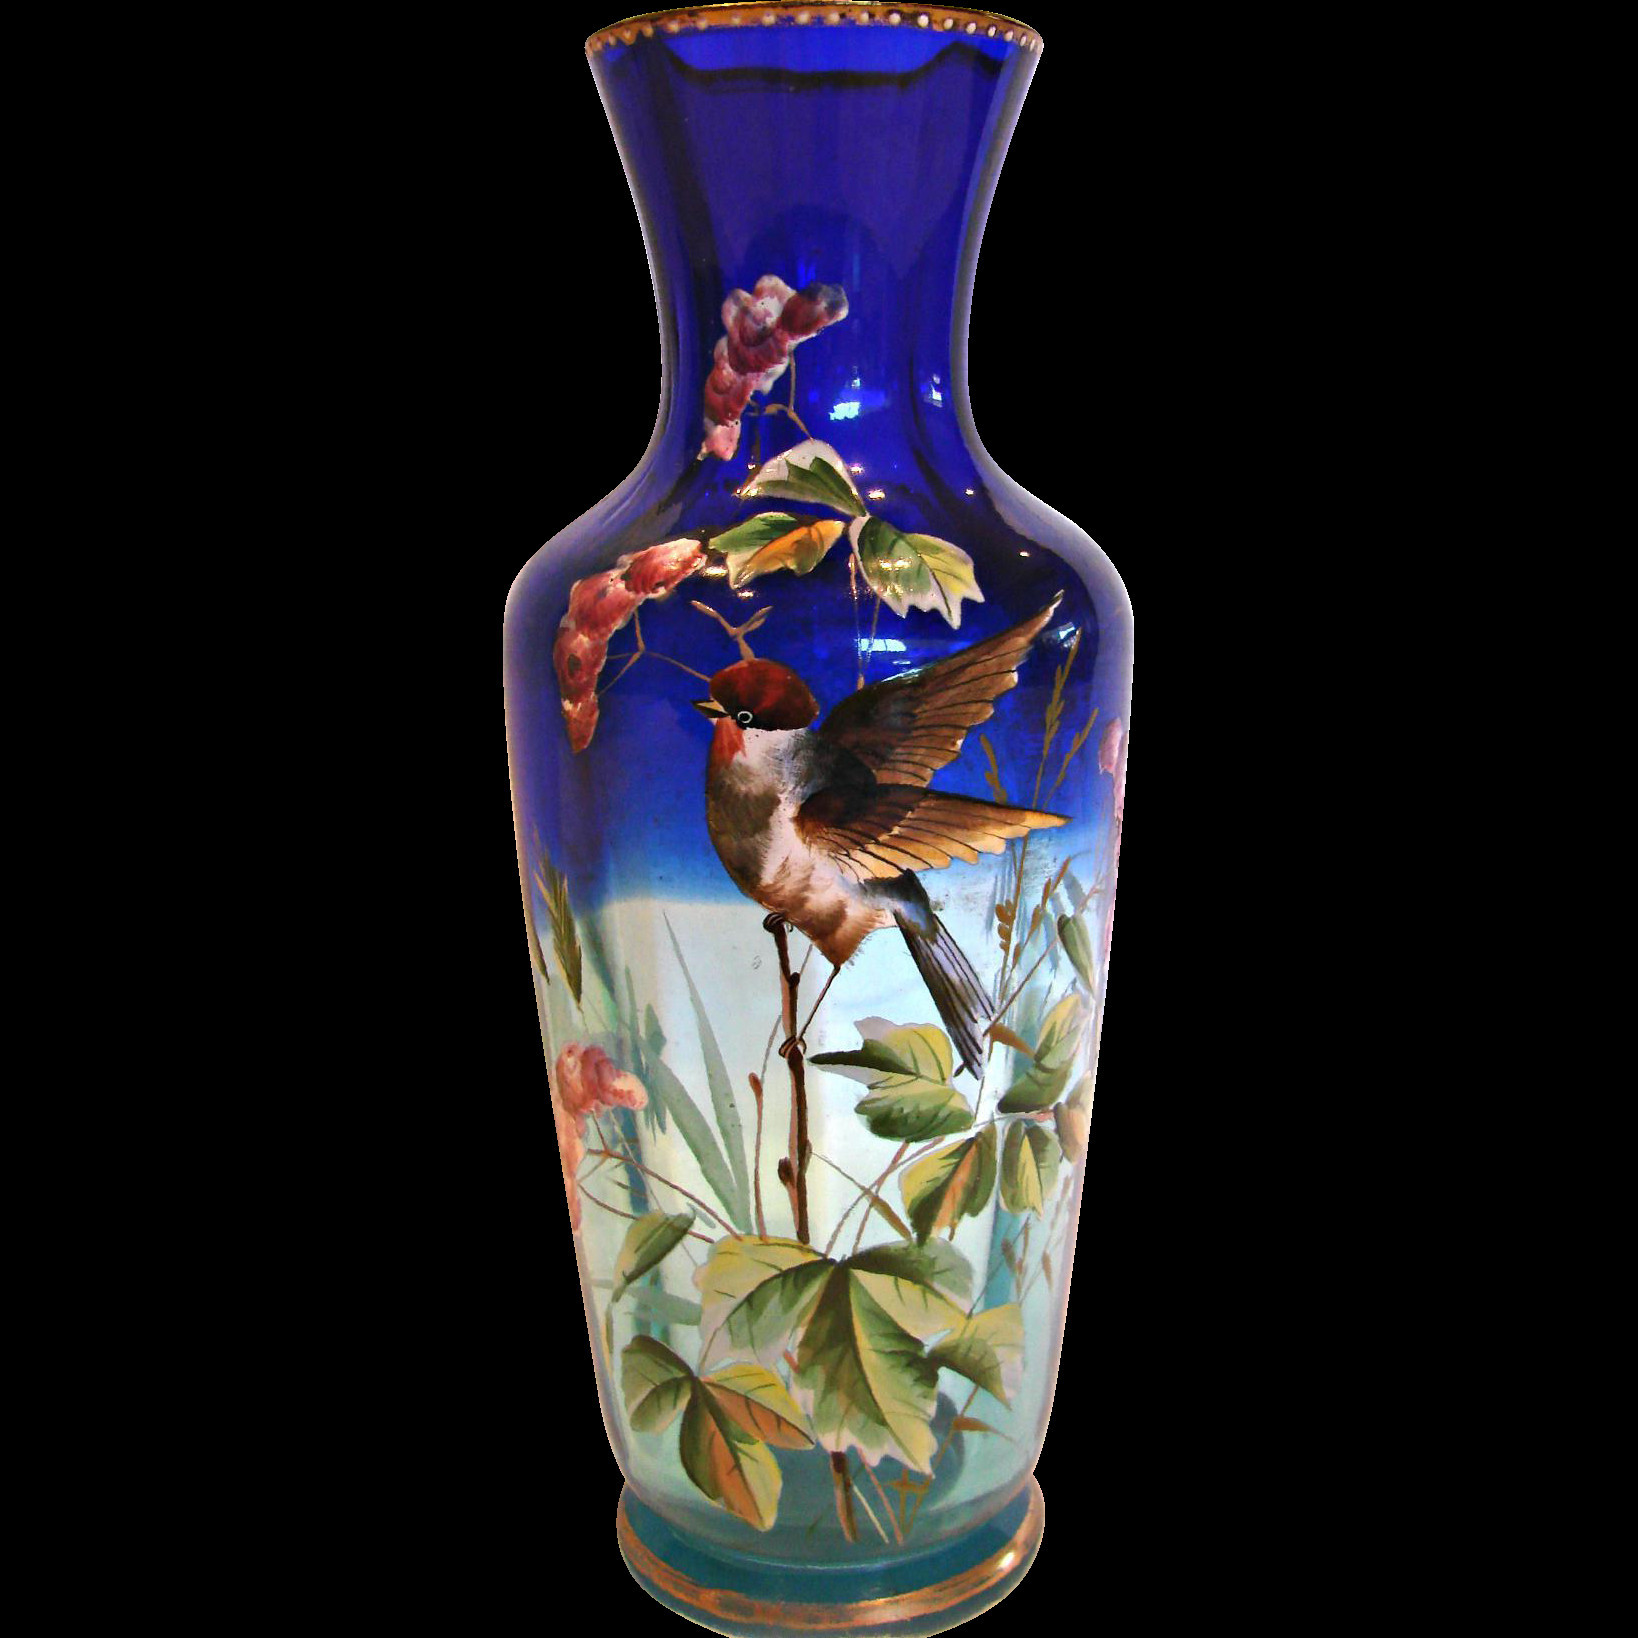 Gold Imari Vase Value Of 20 Inspirational Antique Decorative Glass Vases Intended for Bohemian Shaded Blue Clear Art Glass Vase Enameled Bird C 1880